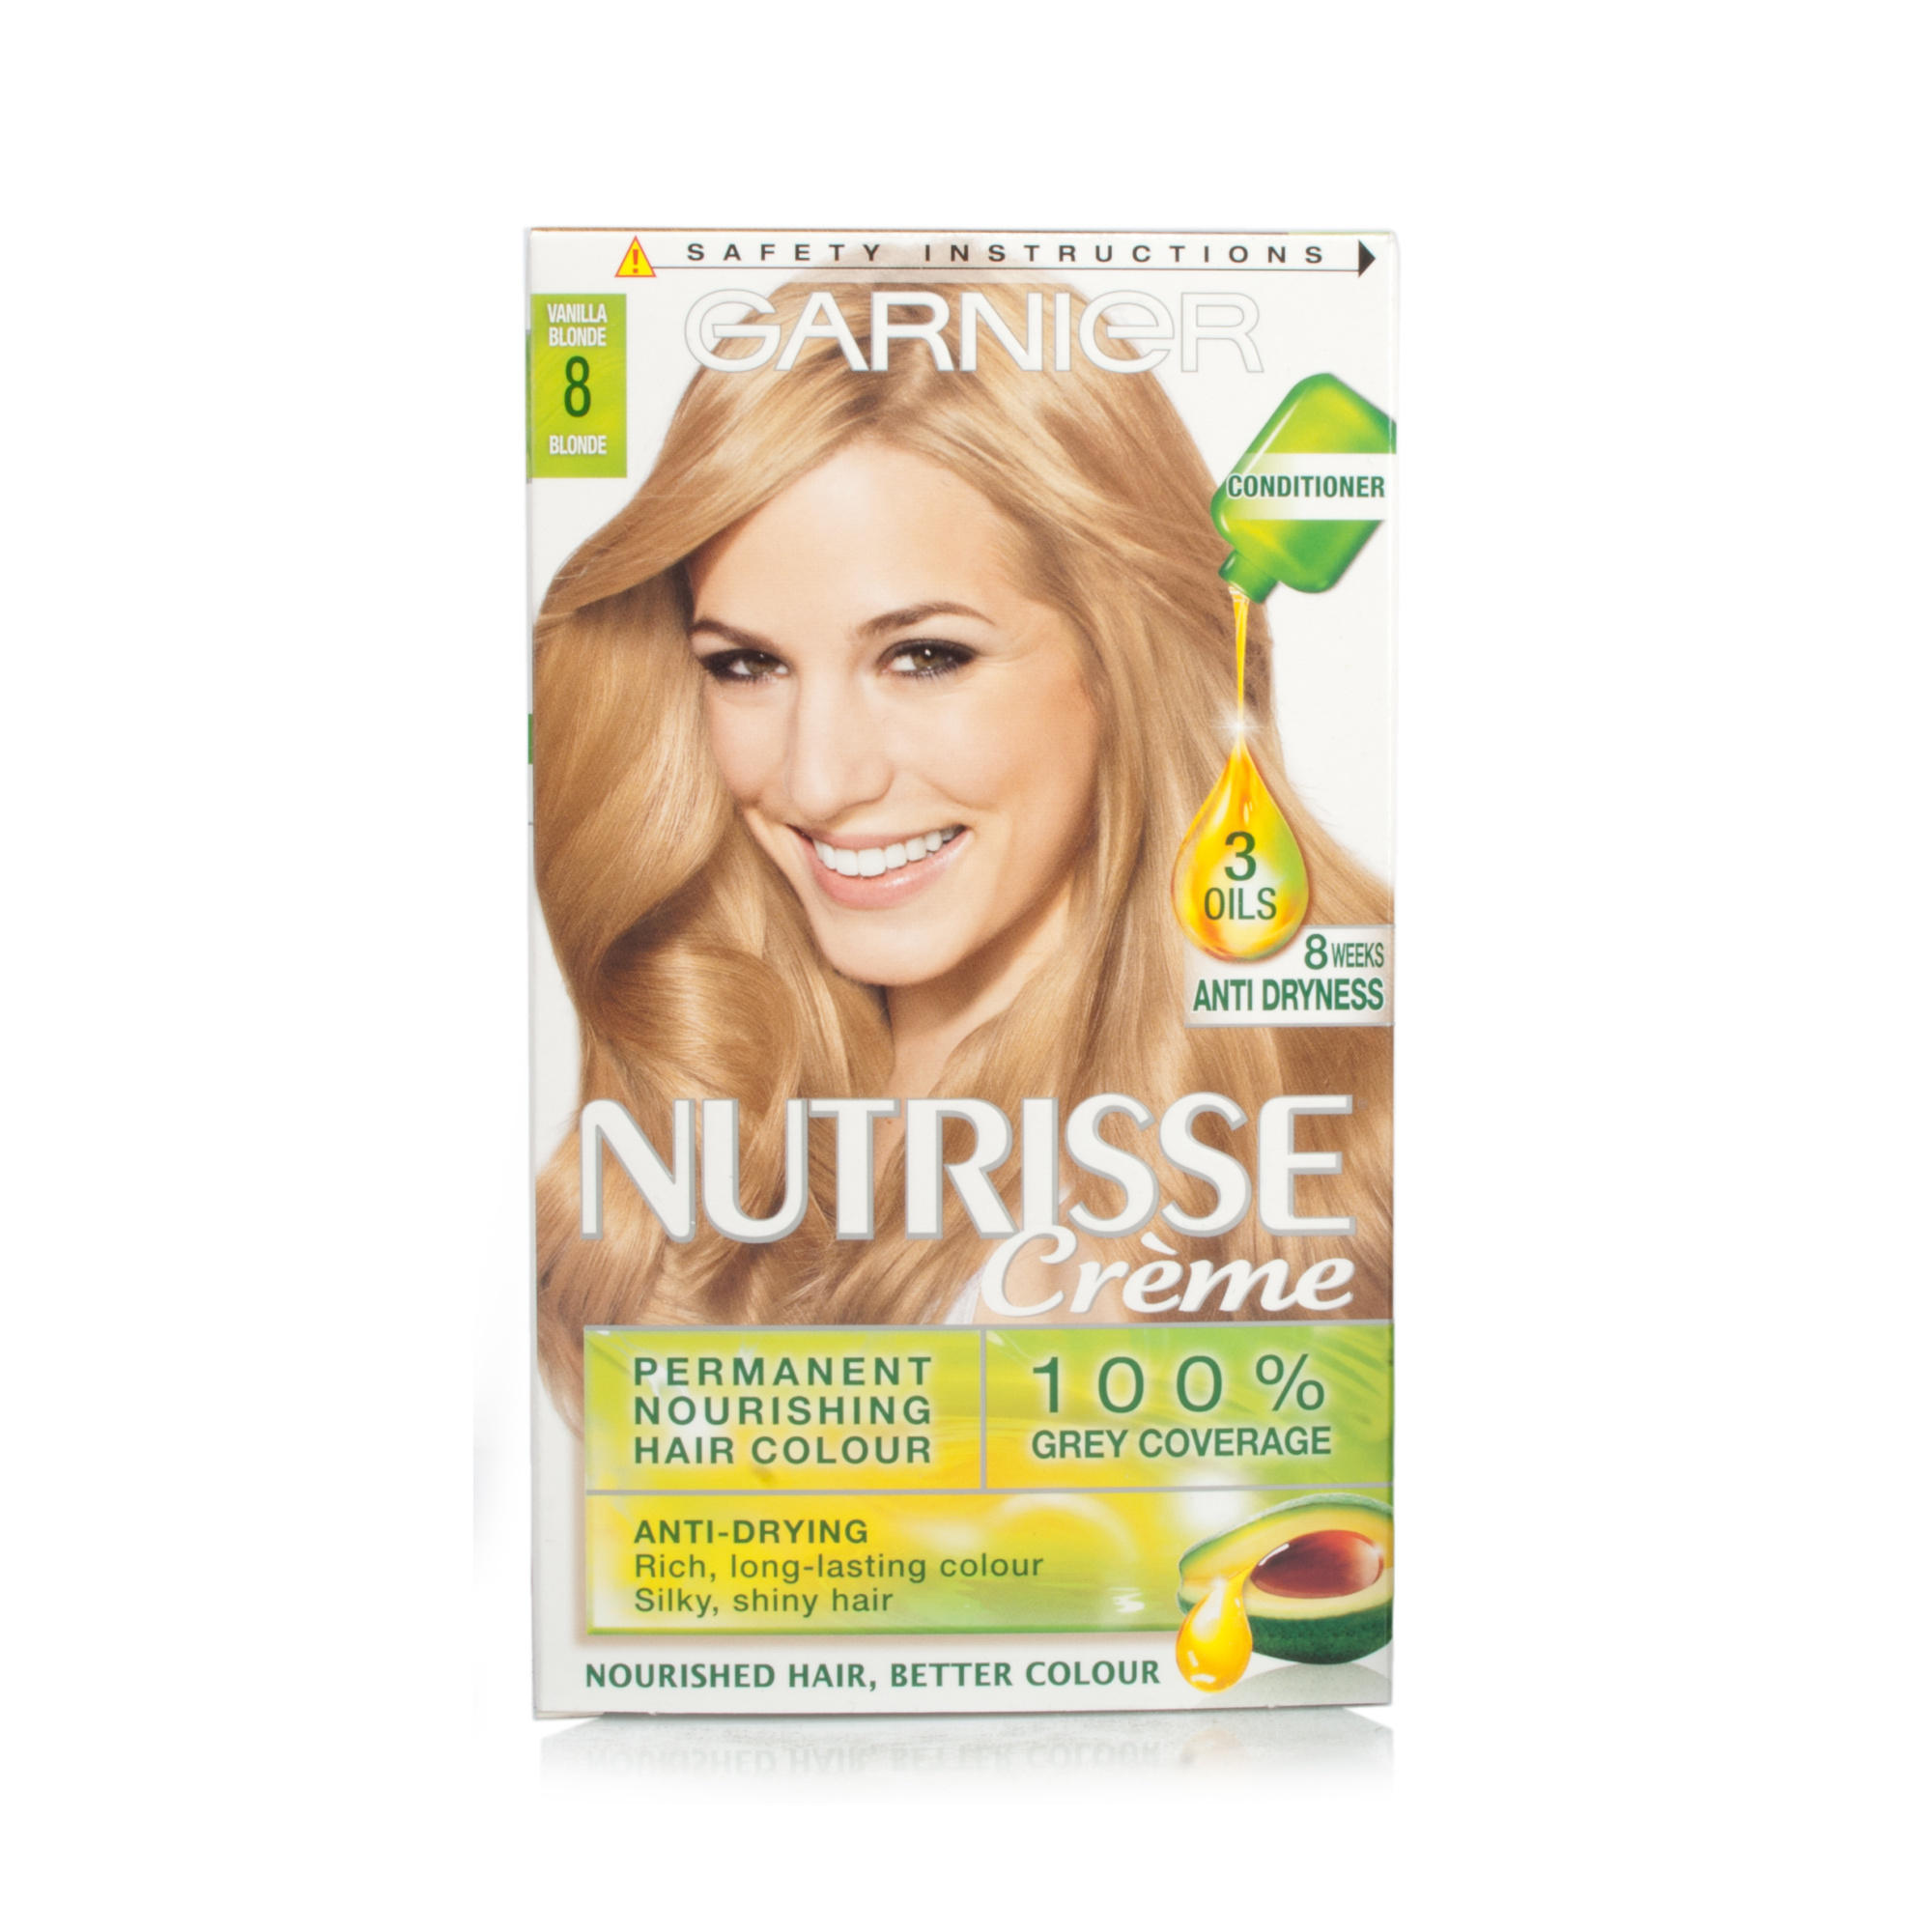 Garnier Nutrisse Creme Intensiv Coloration Beauty Nofaxpaydaynvz